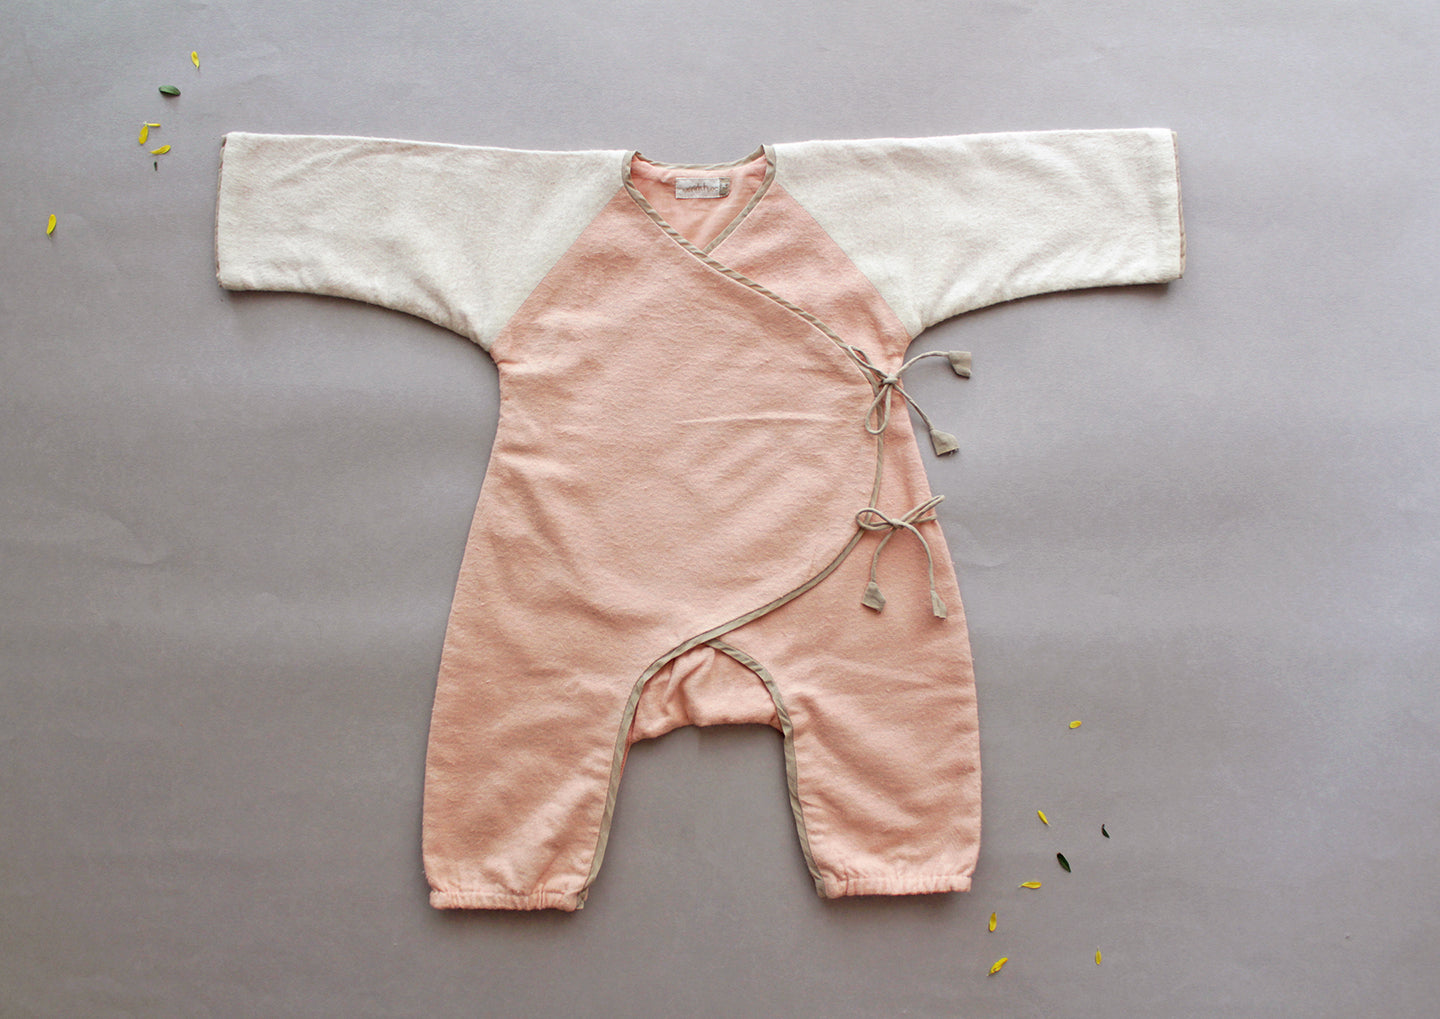 Warm Snuggle Winter BodySuit - Pale Rose